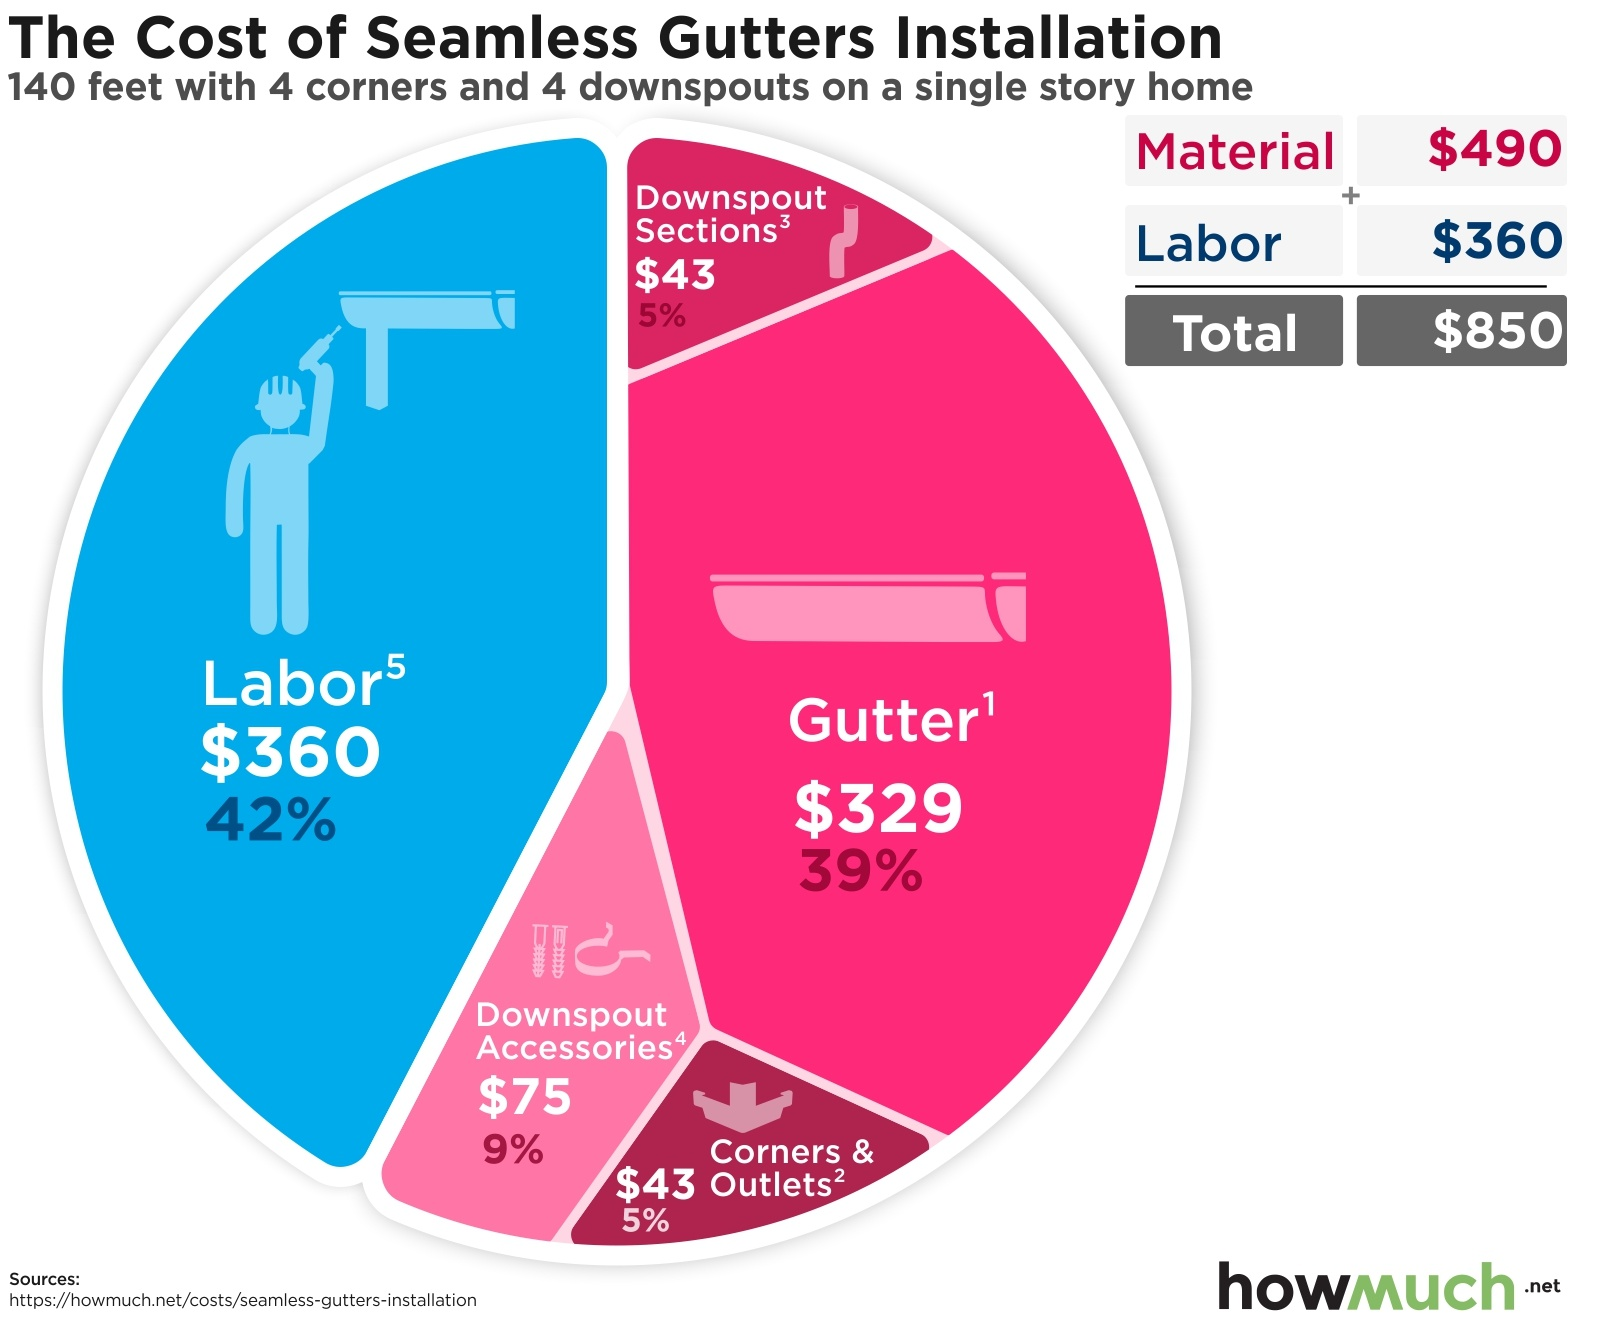 The Cost of Seamless Gutter Installation